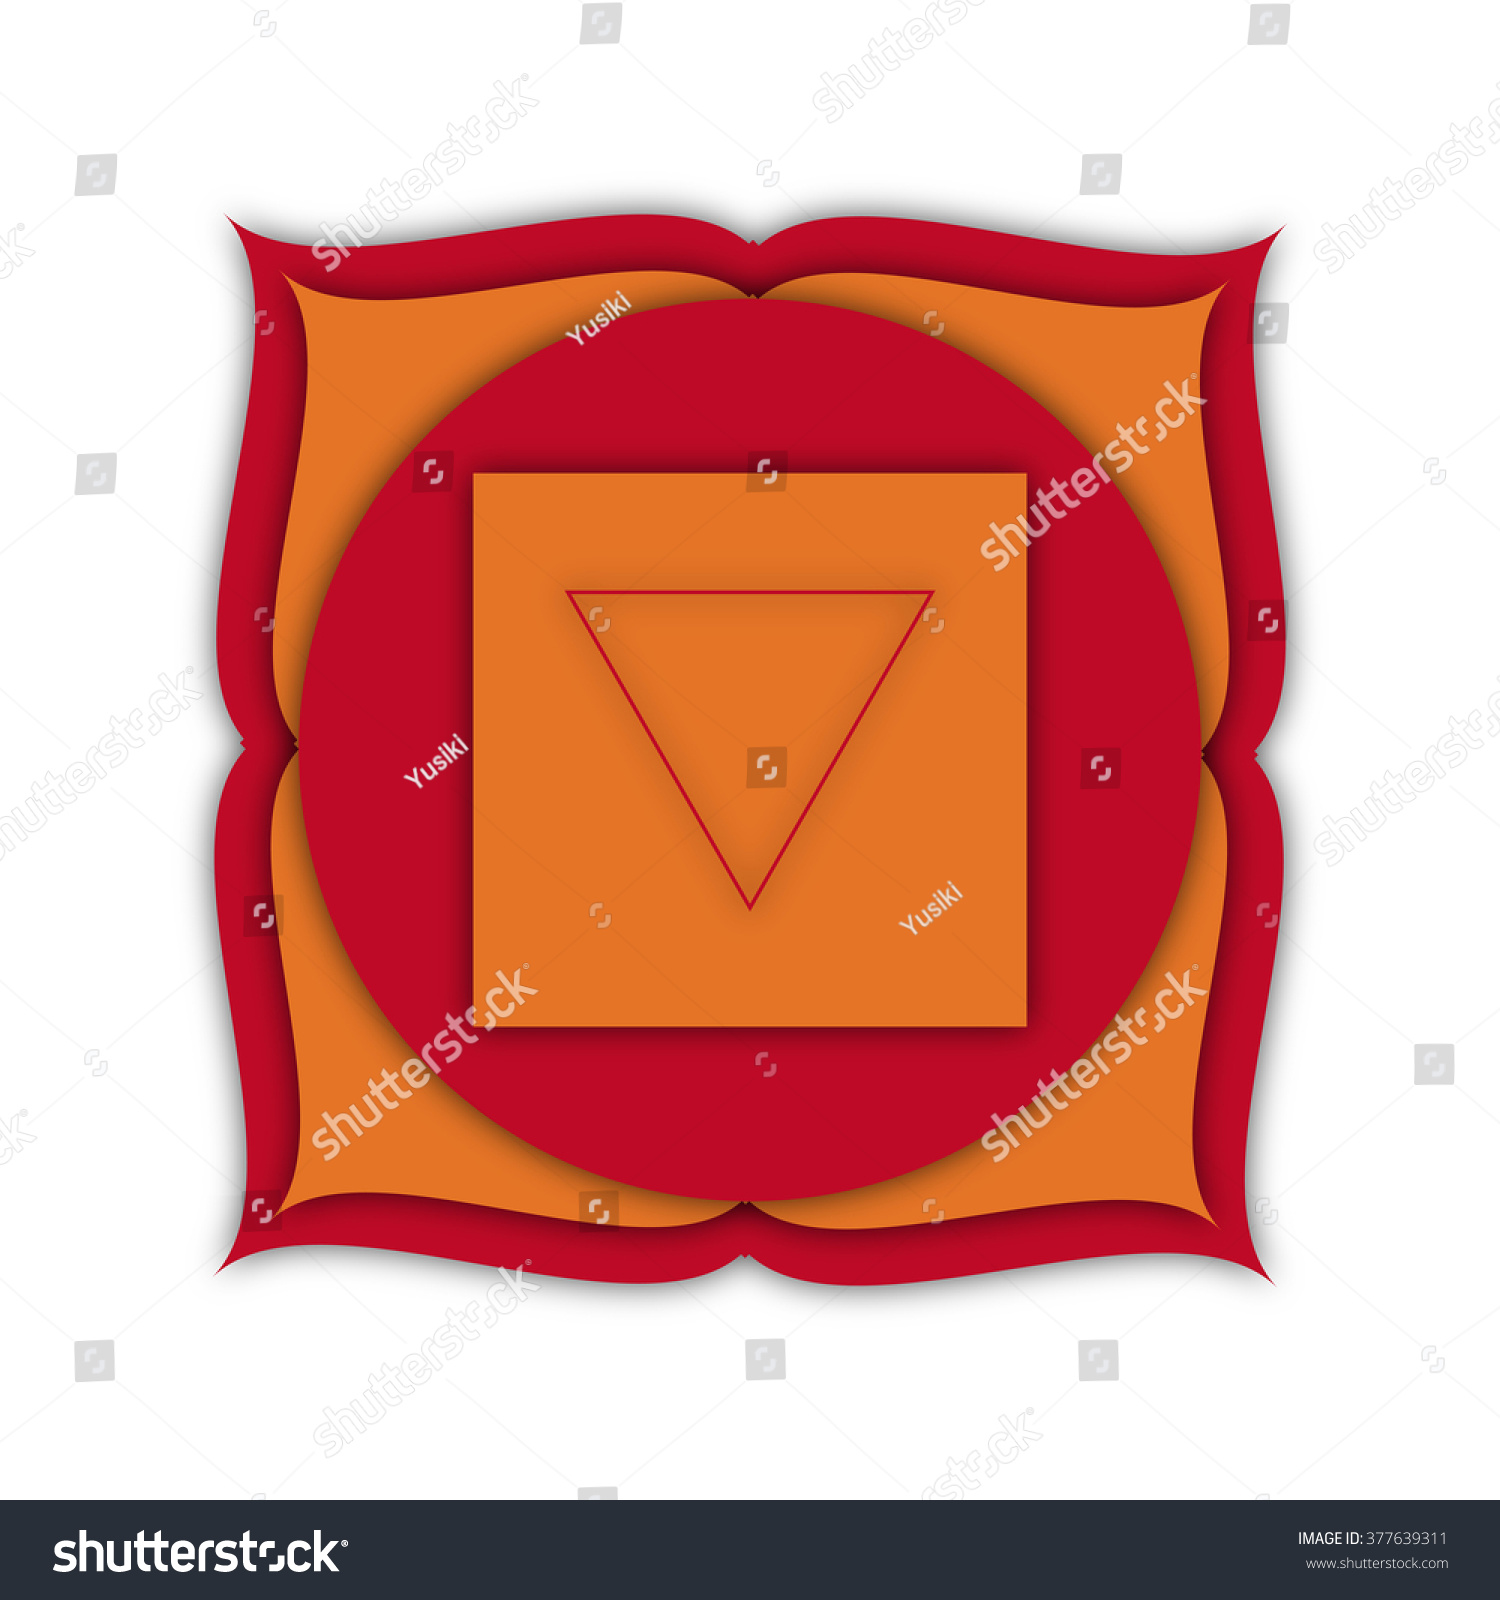 Root Chakra Symbol With Sparkling Glitter Background For Yoga